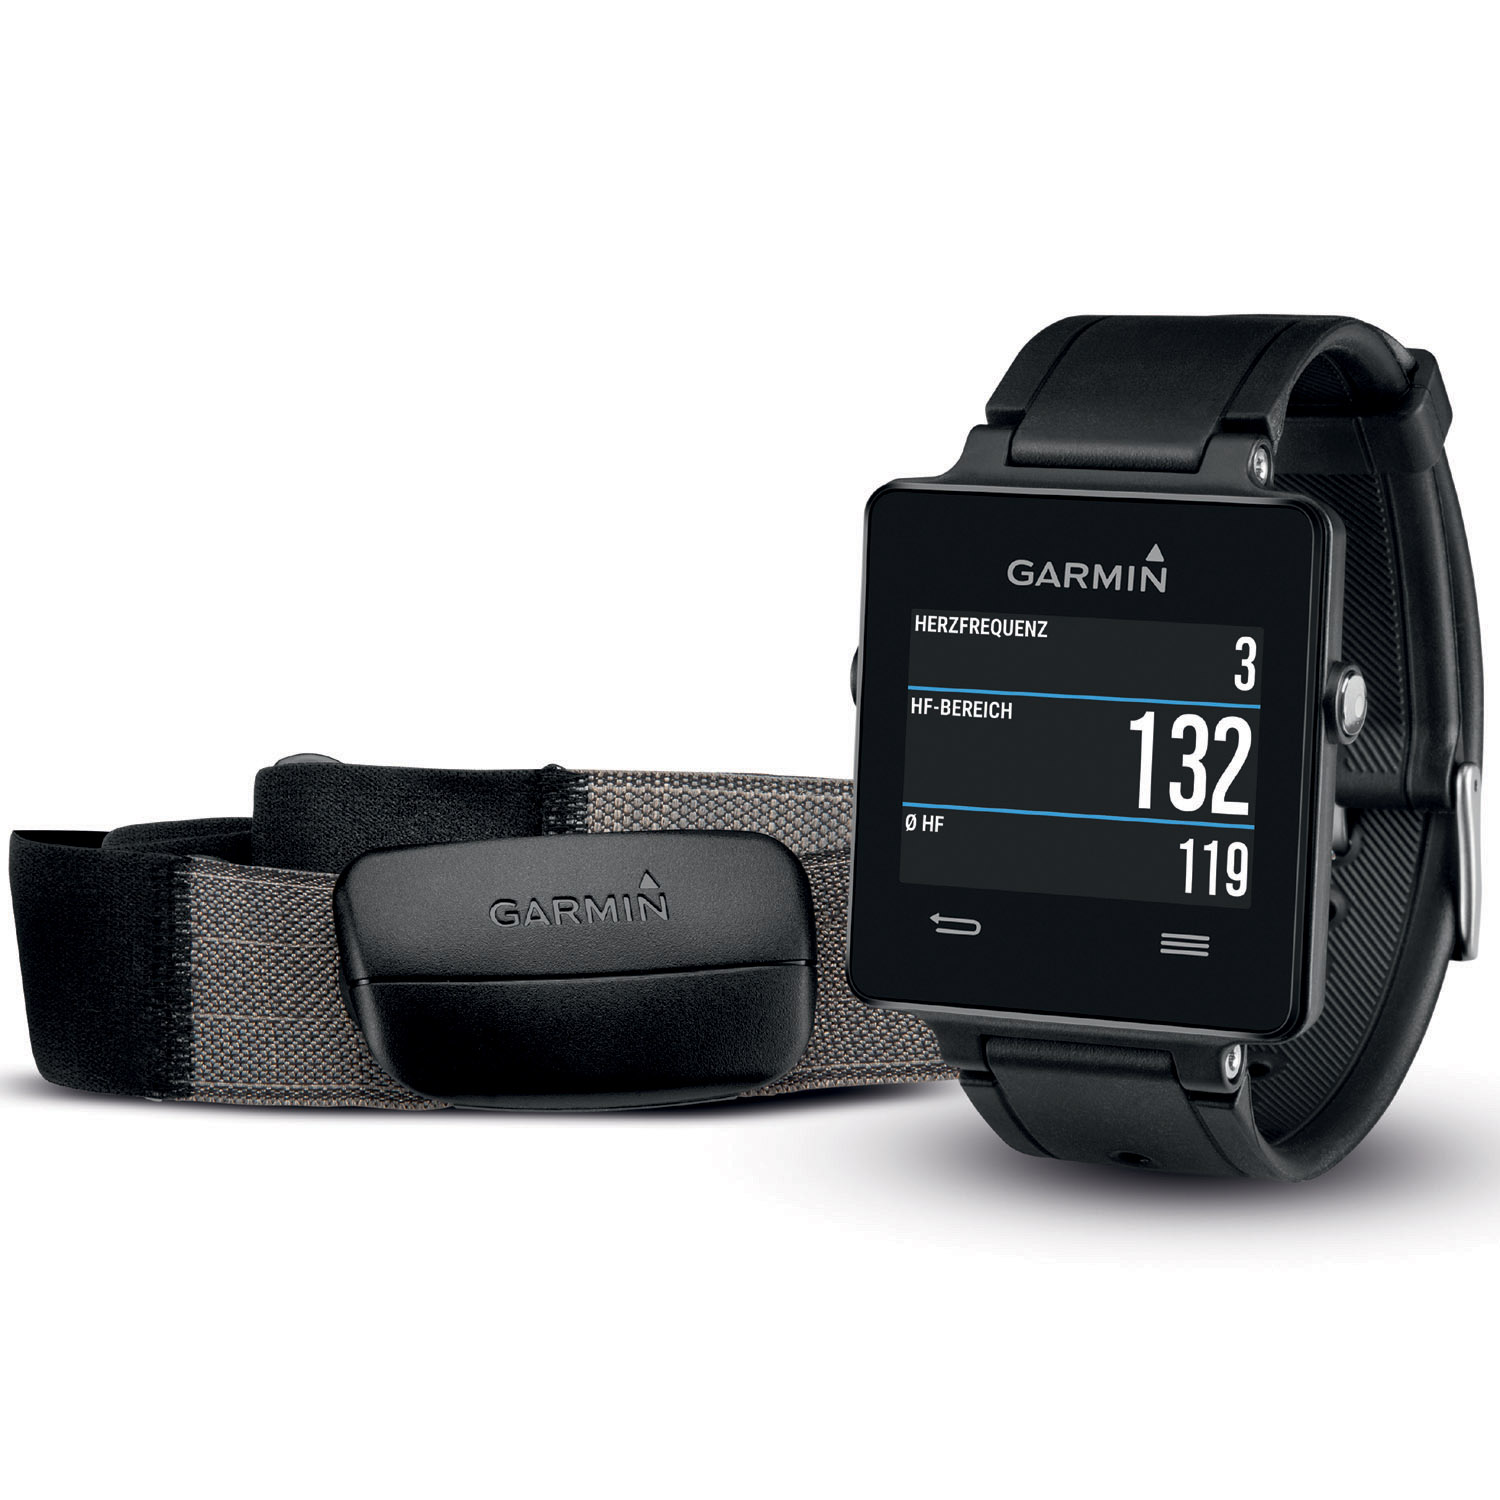 garmin gps multifunktionsuhr vivoactive hrm bundle. Black Bedroom Furniture Sets. Home Design Ideas